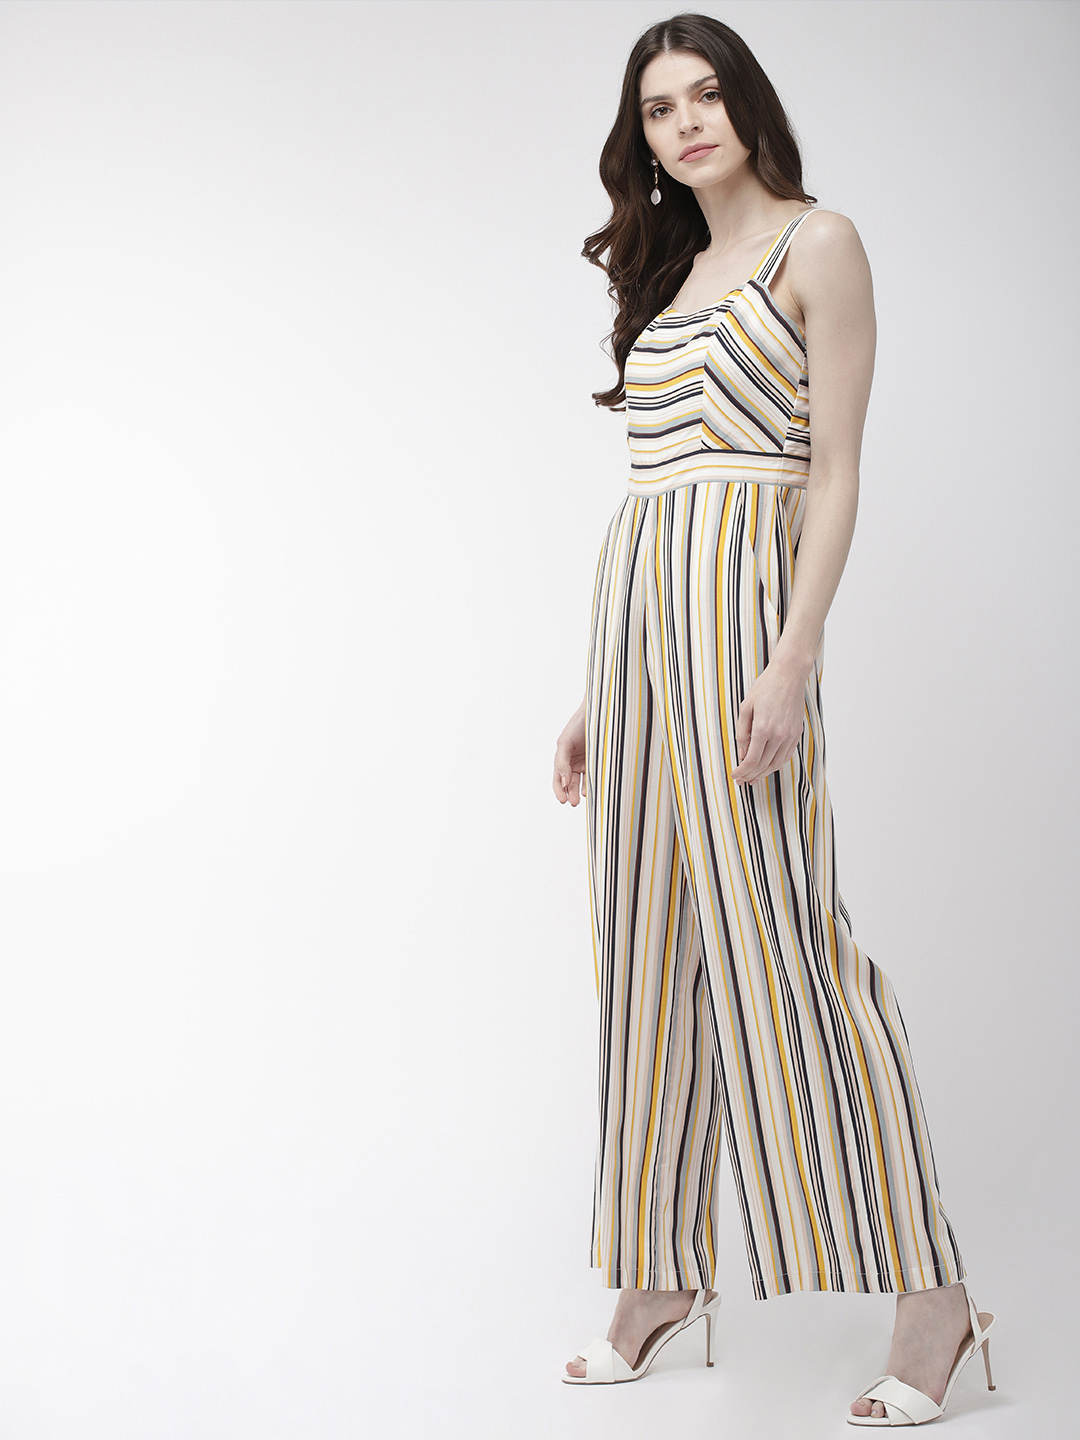 Jumpsuits-The Girl In The Striped Jumpsuit4